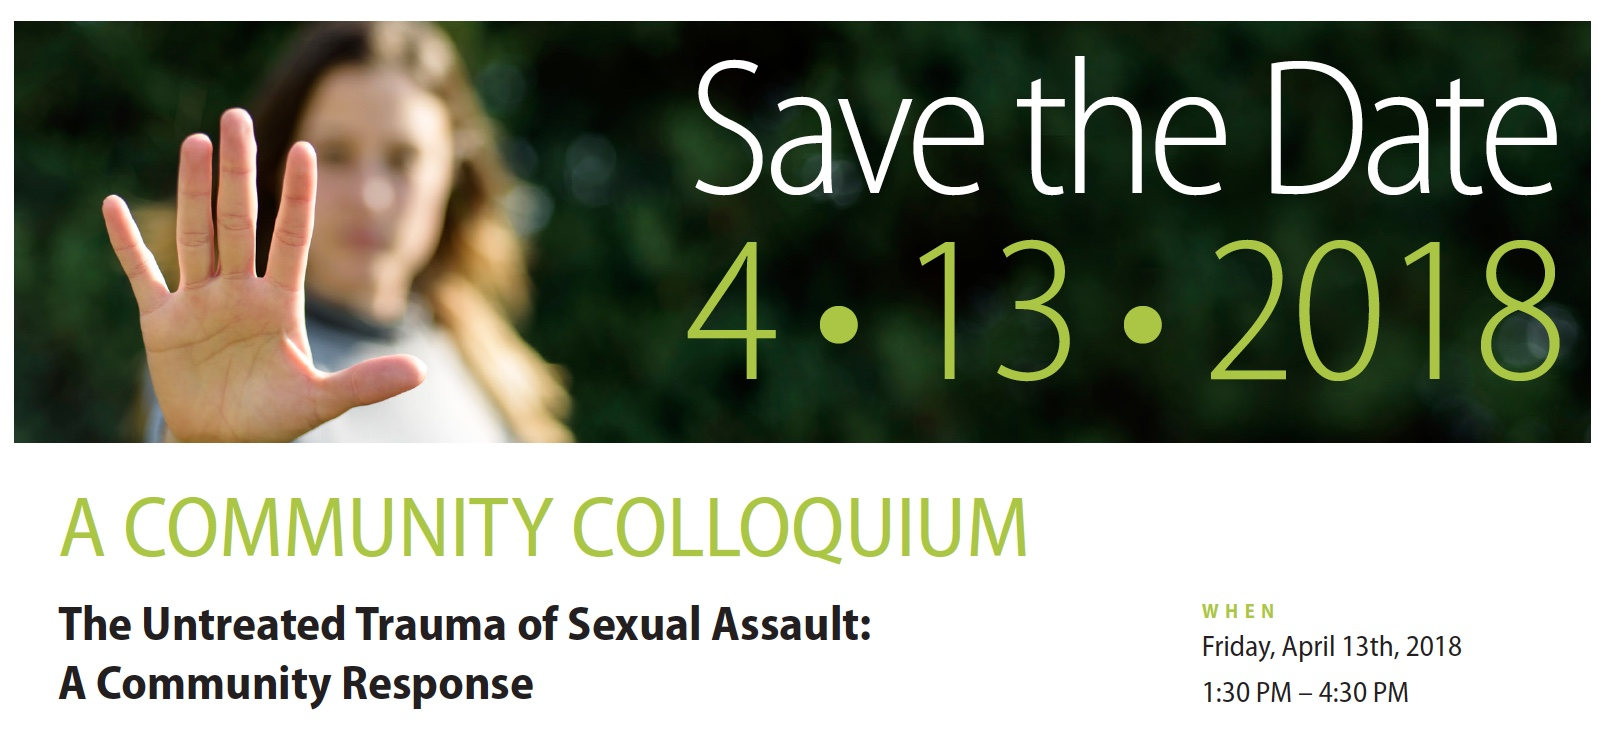 The Untreated Trauma of Sexual Assault: A Community Response